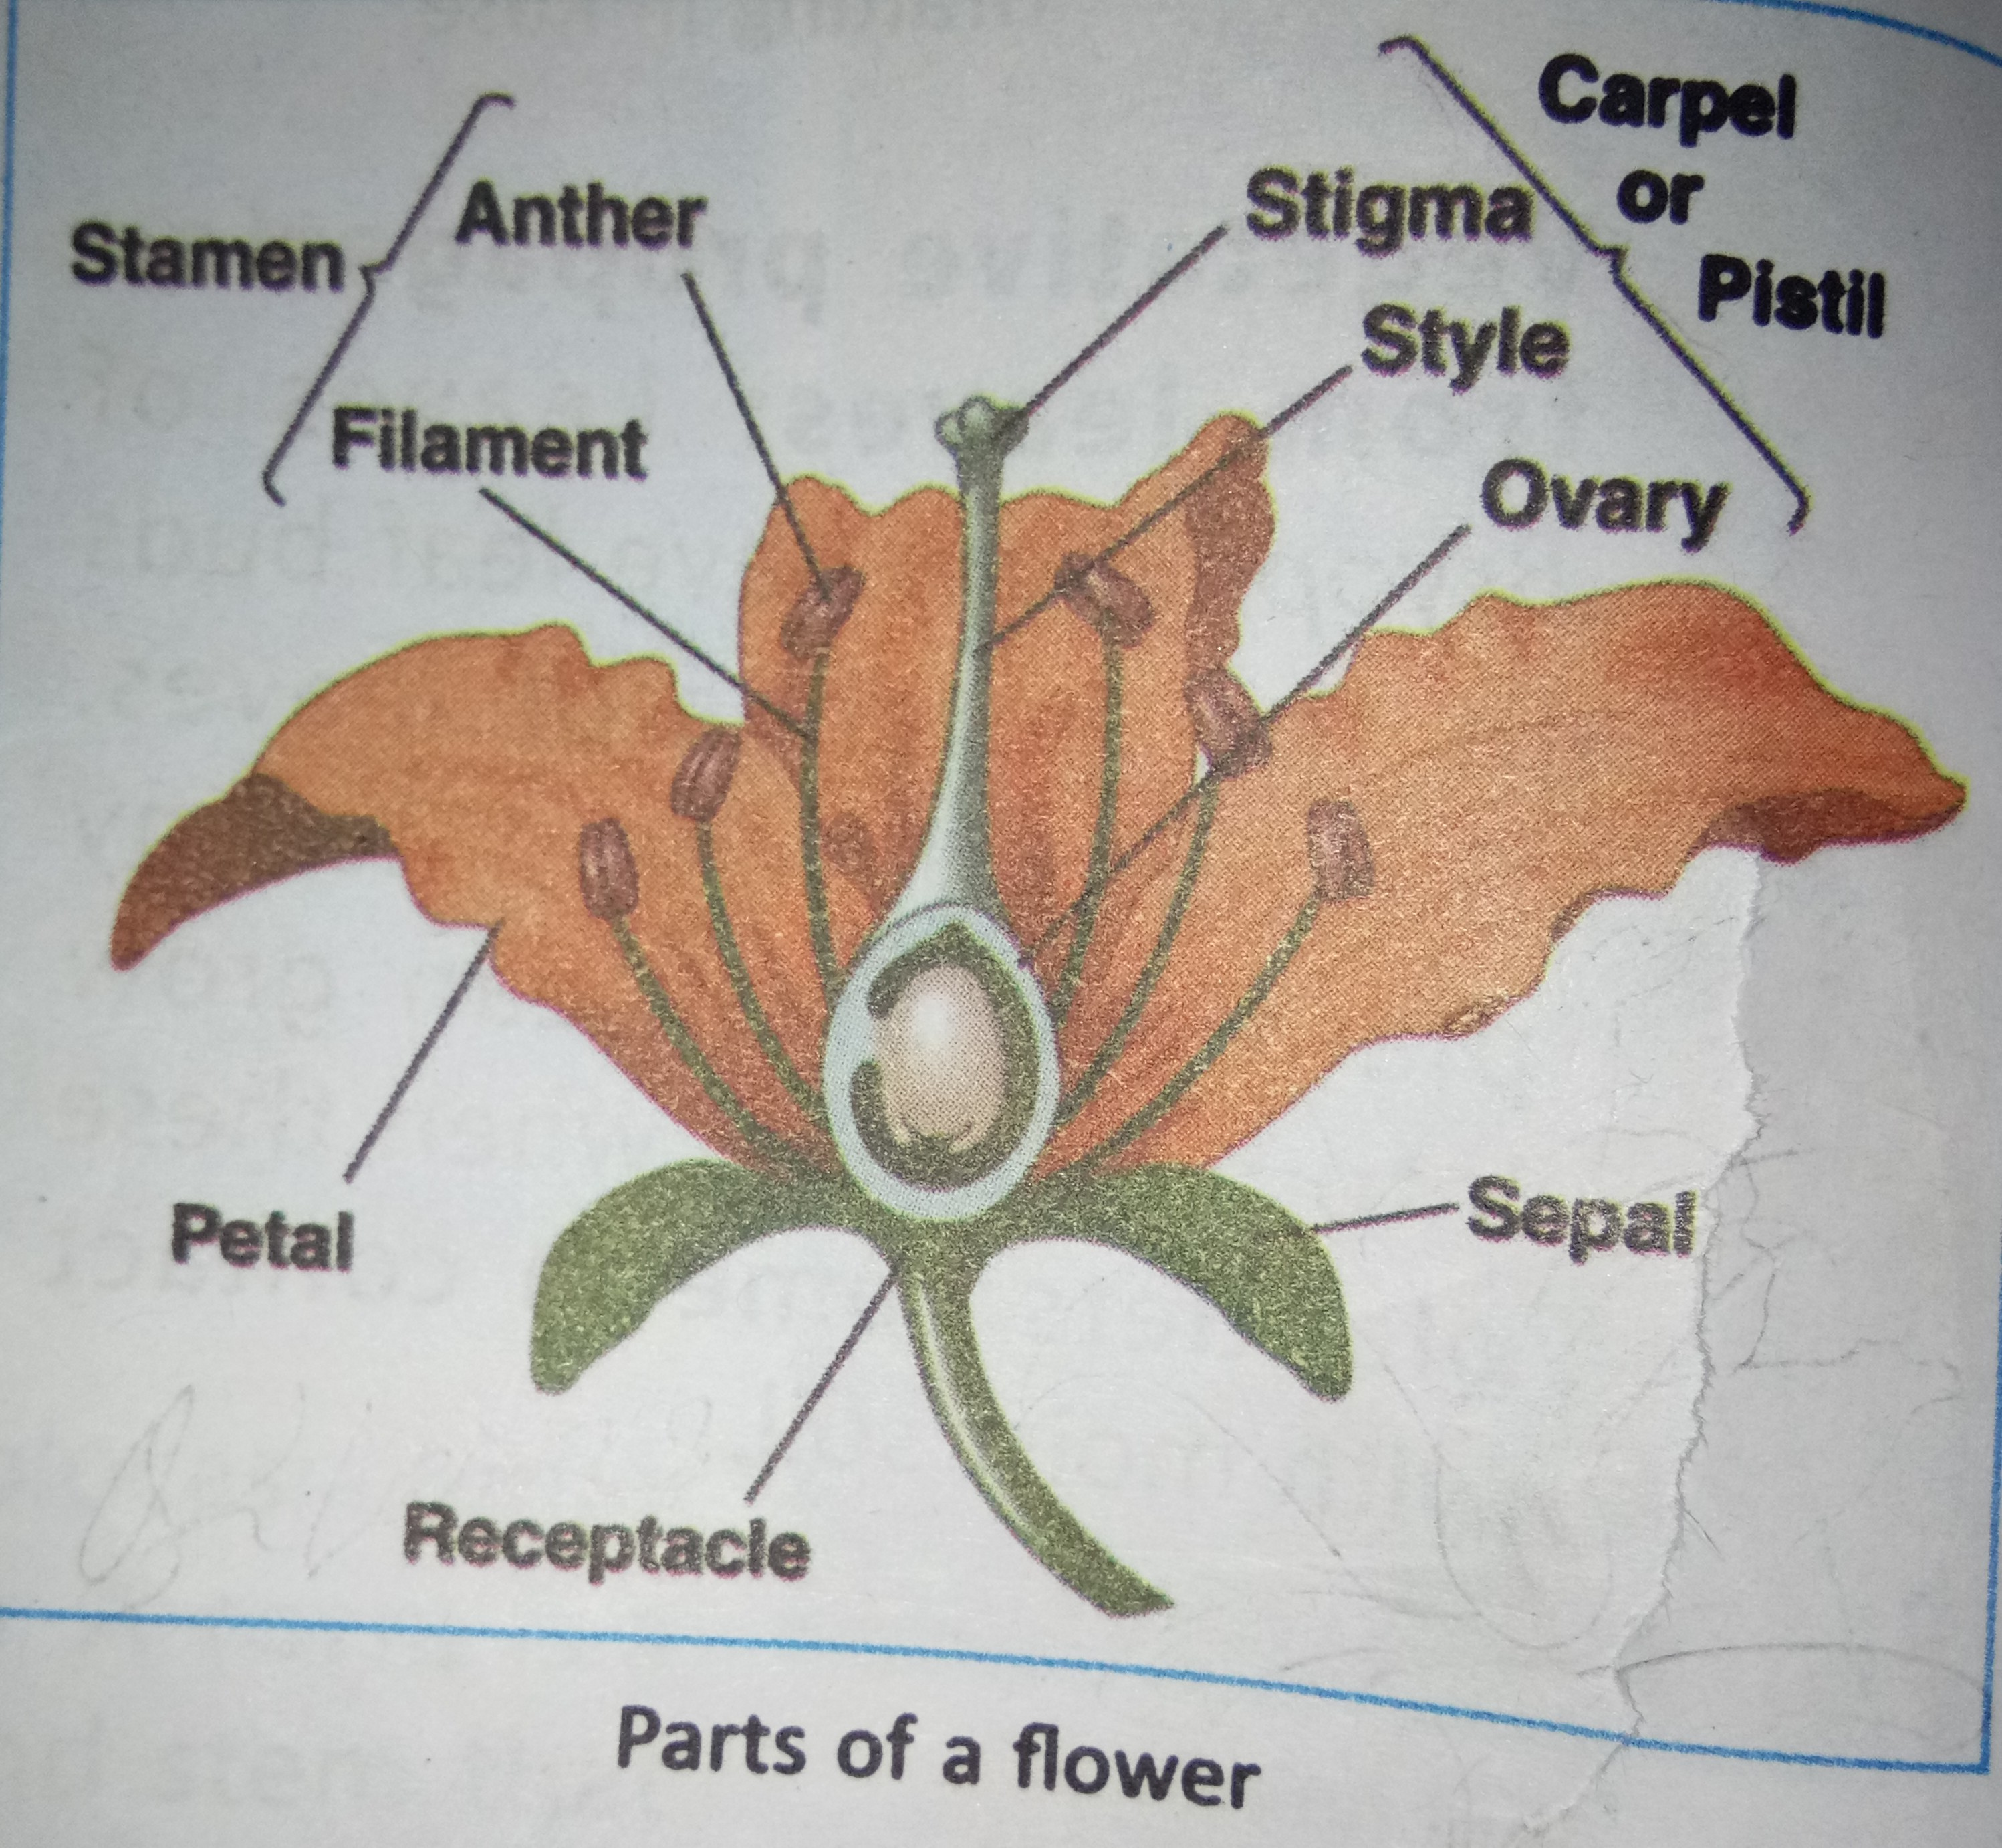 Draw A Labelled Diagram Of A Flower And Describe Its